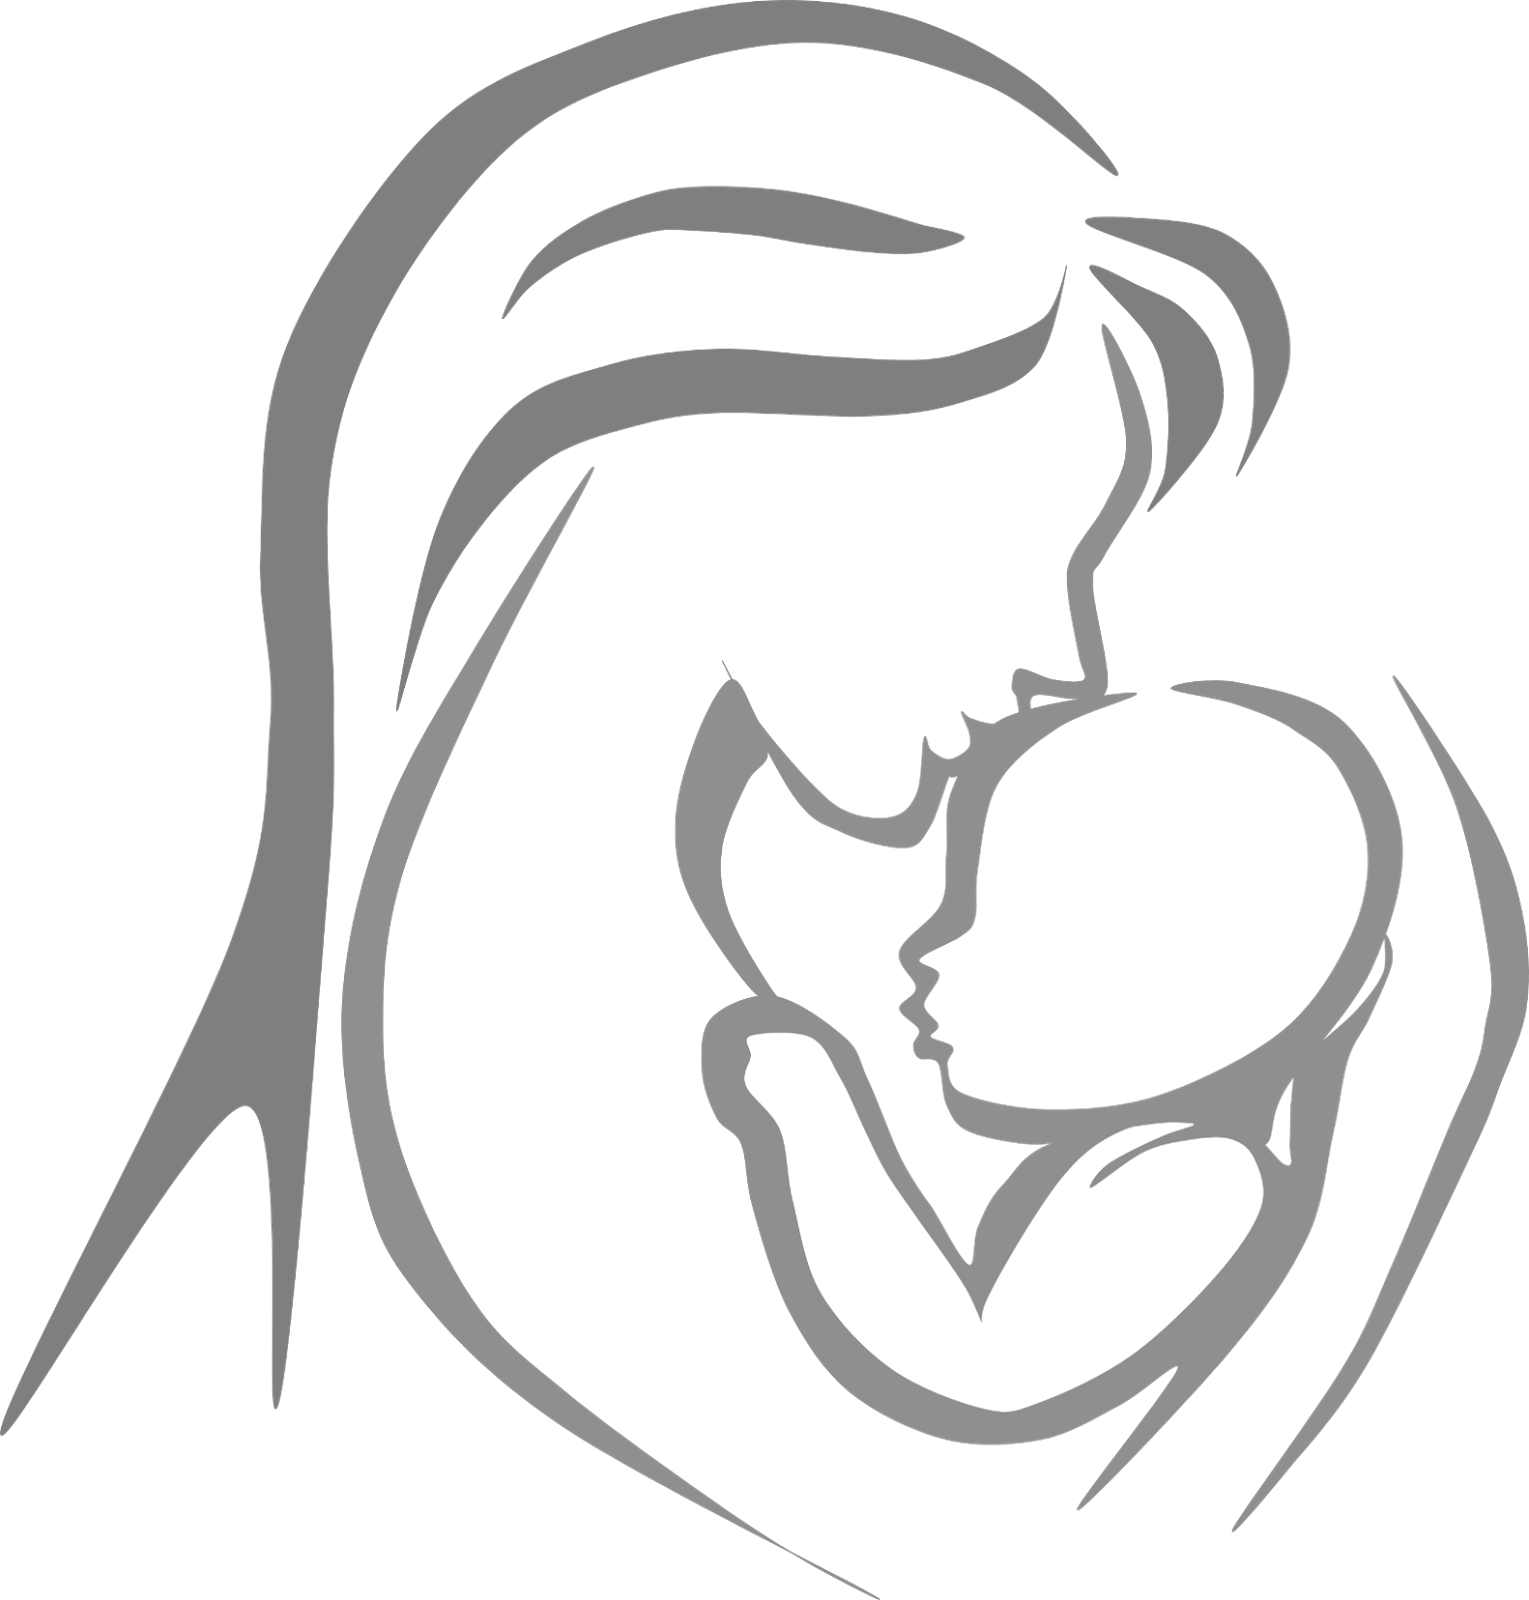 Love The Mother Child Silhouette: Mother And Child Clipart